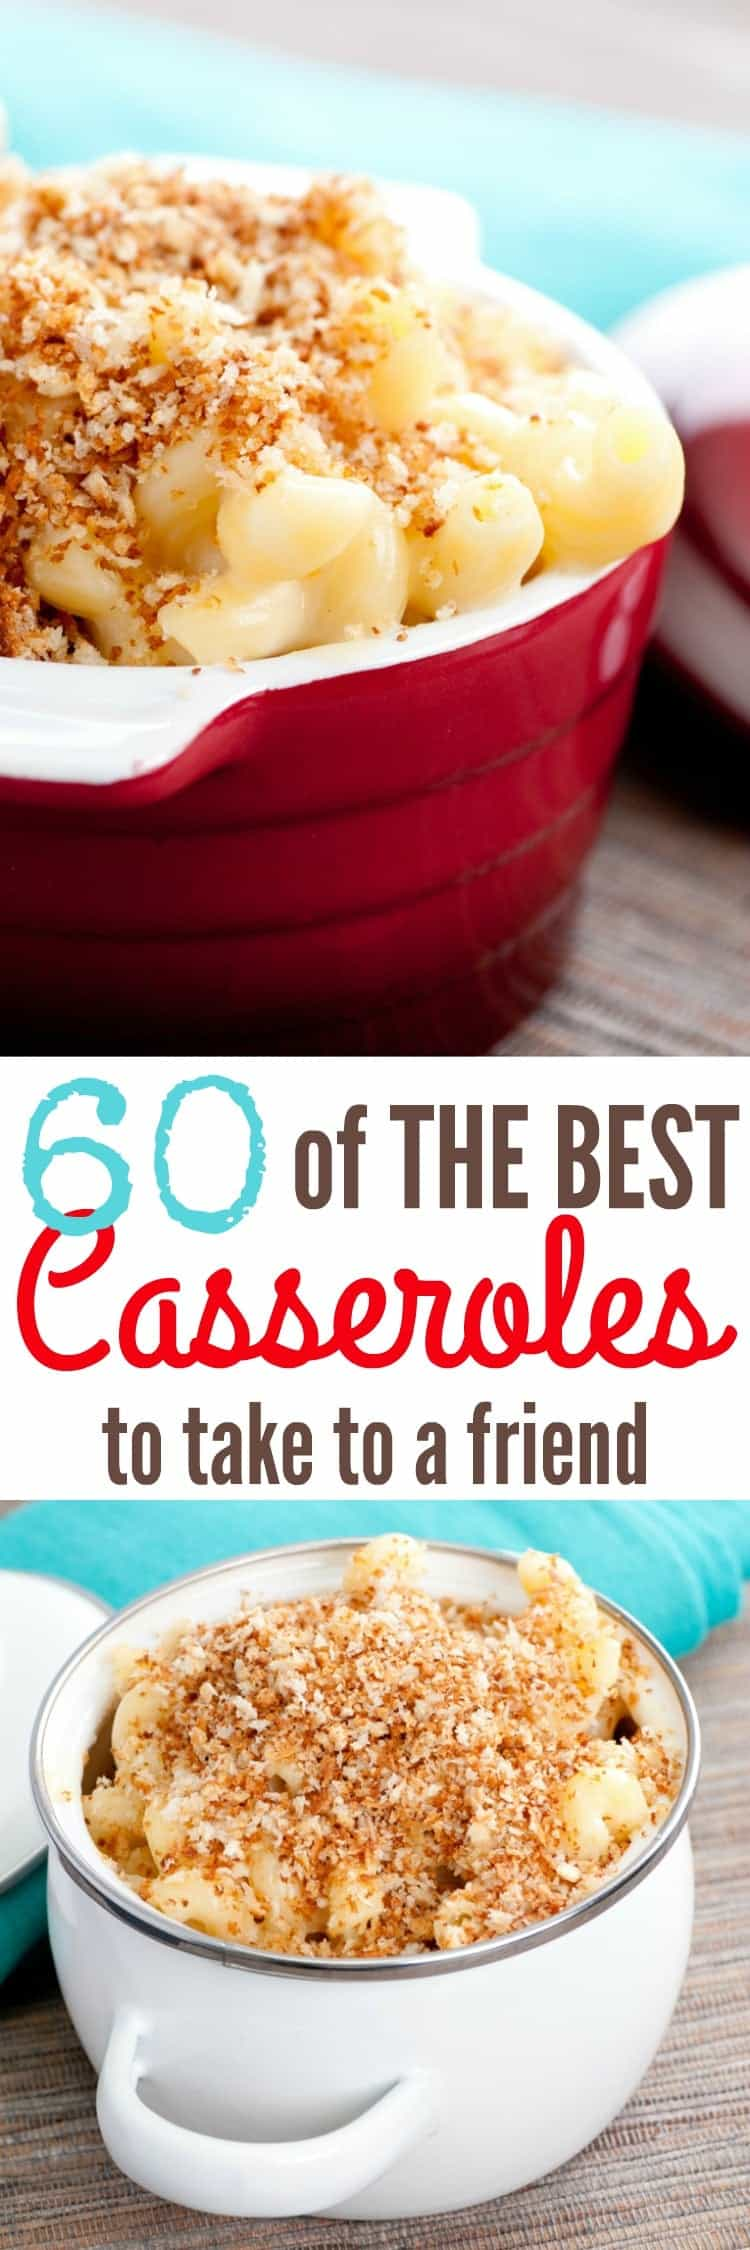 The Best Casseroles to Take to a Friend